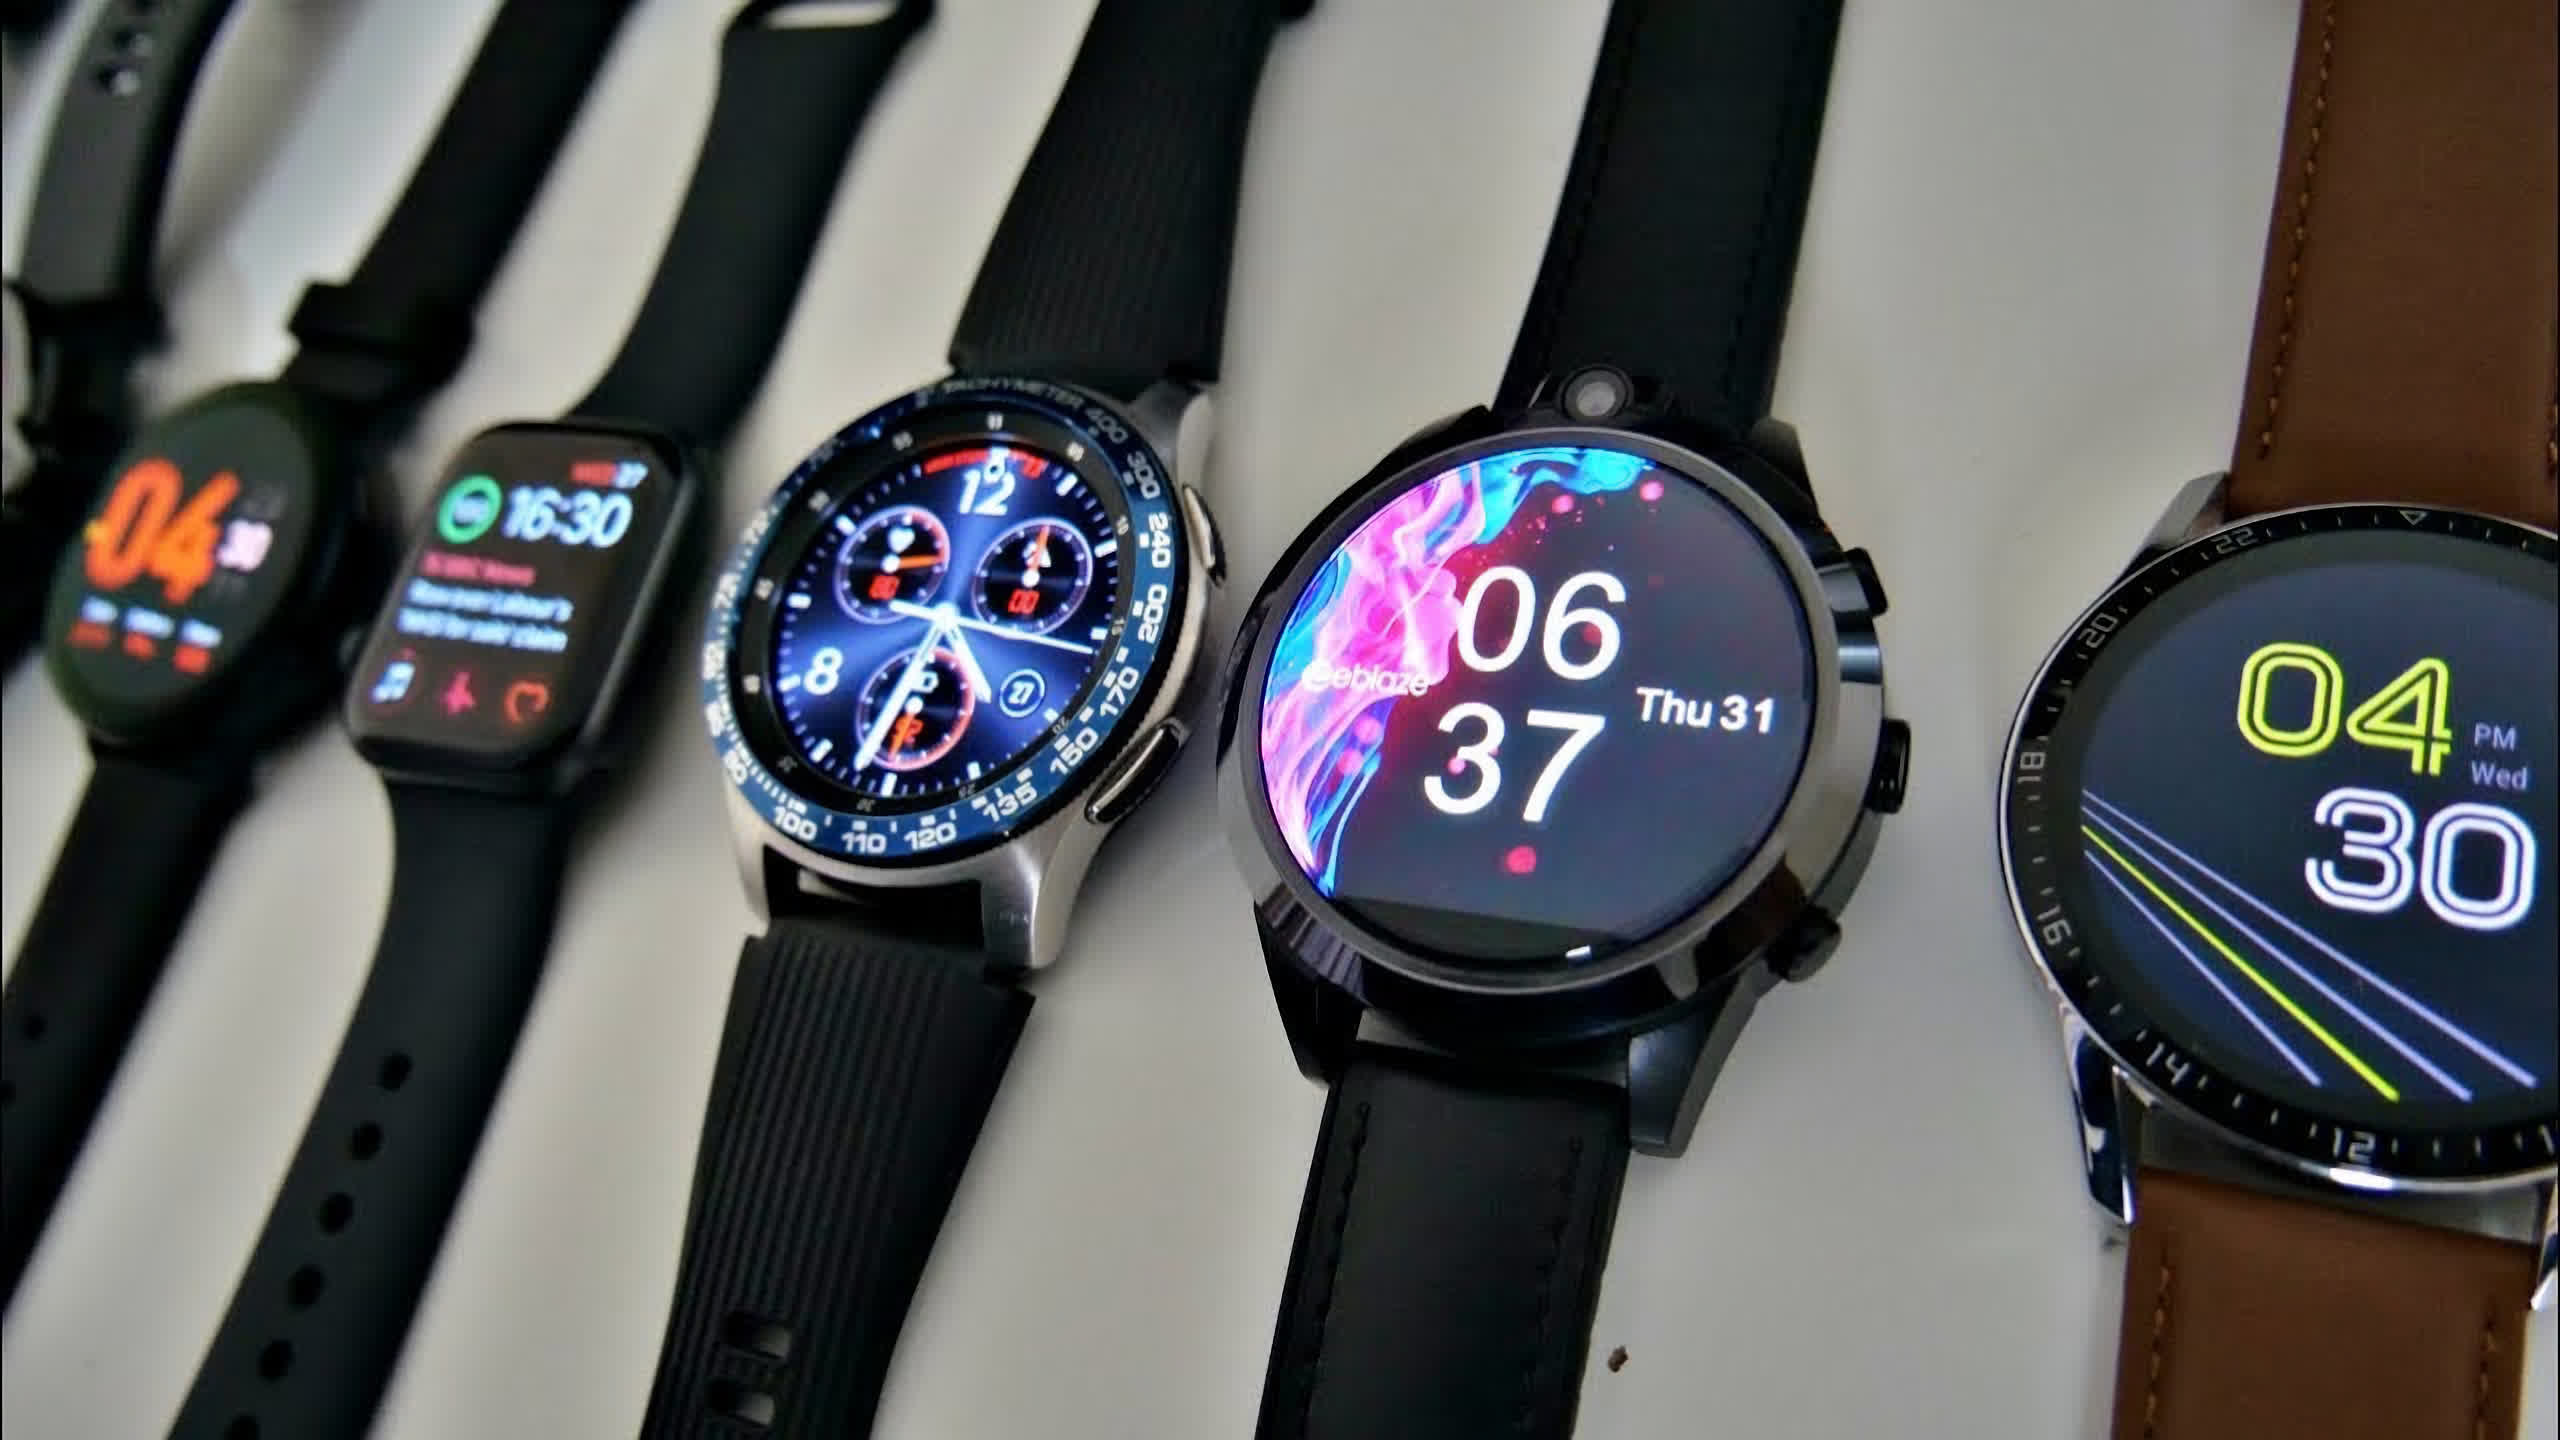 The smartwatch industry is now 27 percent bigger than it was a year ago